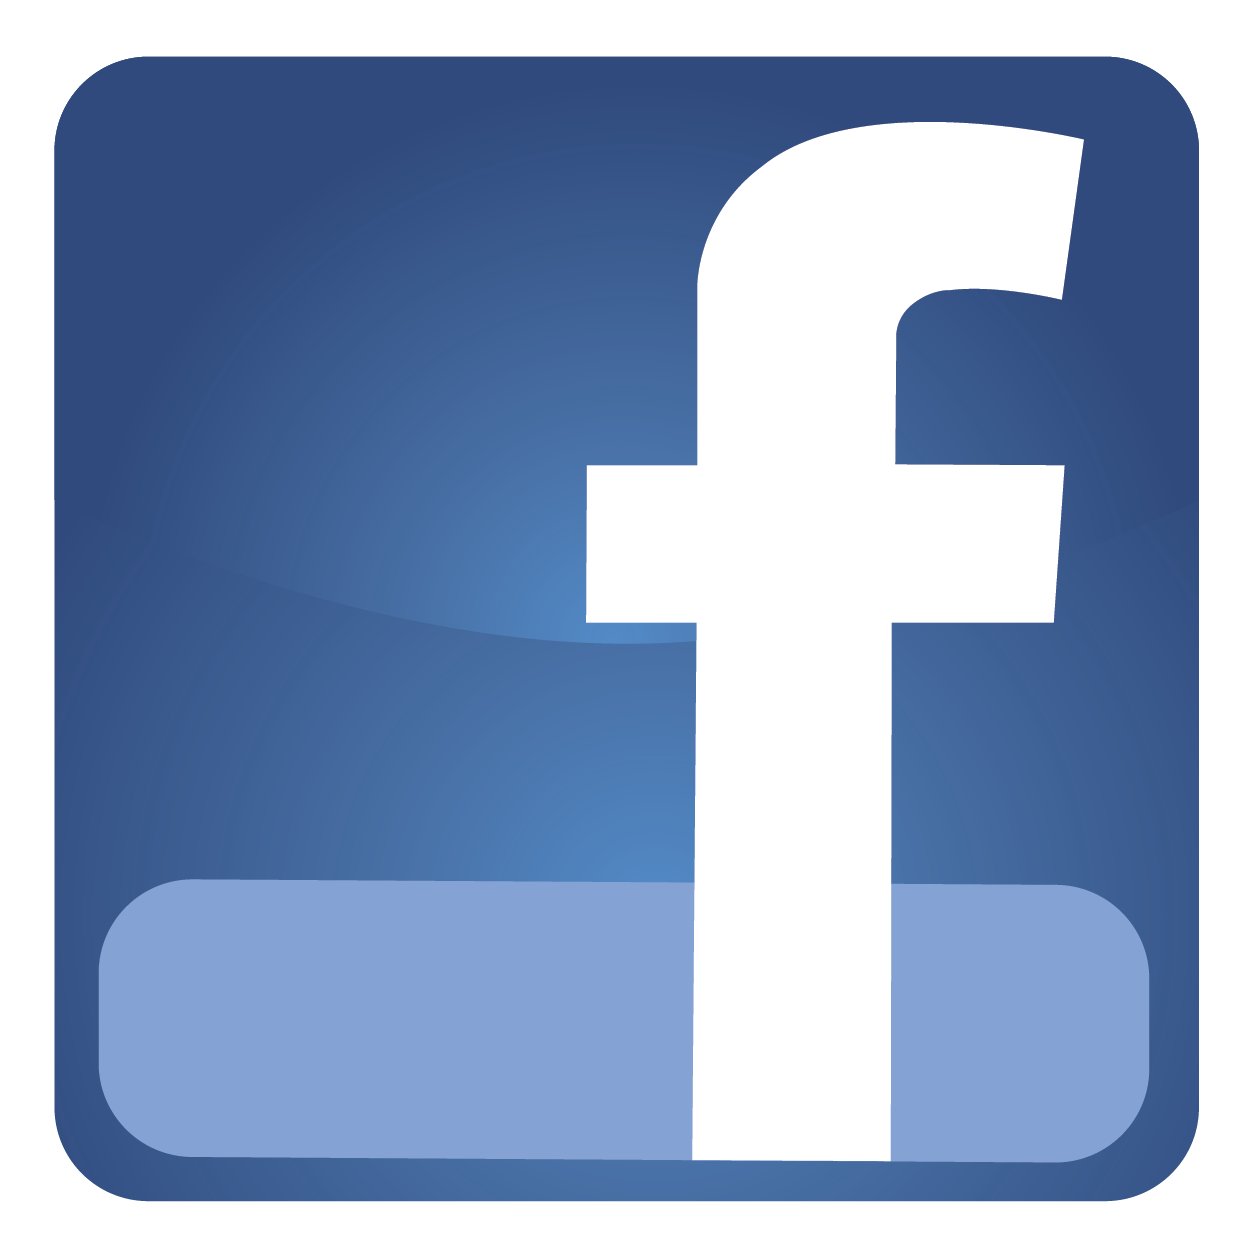 Facebook F Logo Transparent Background